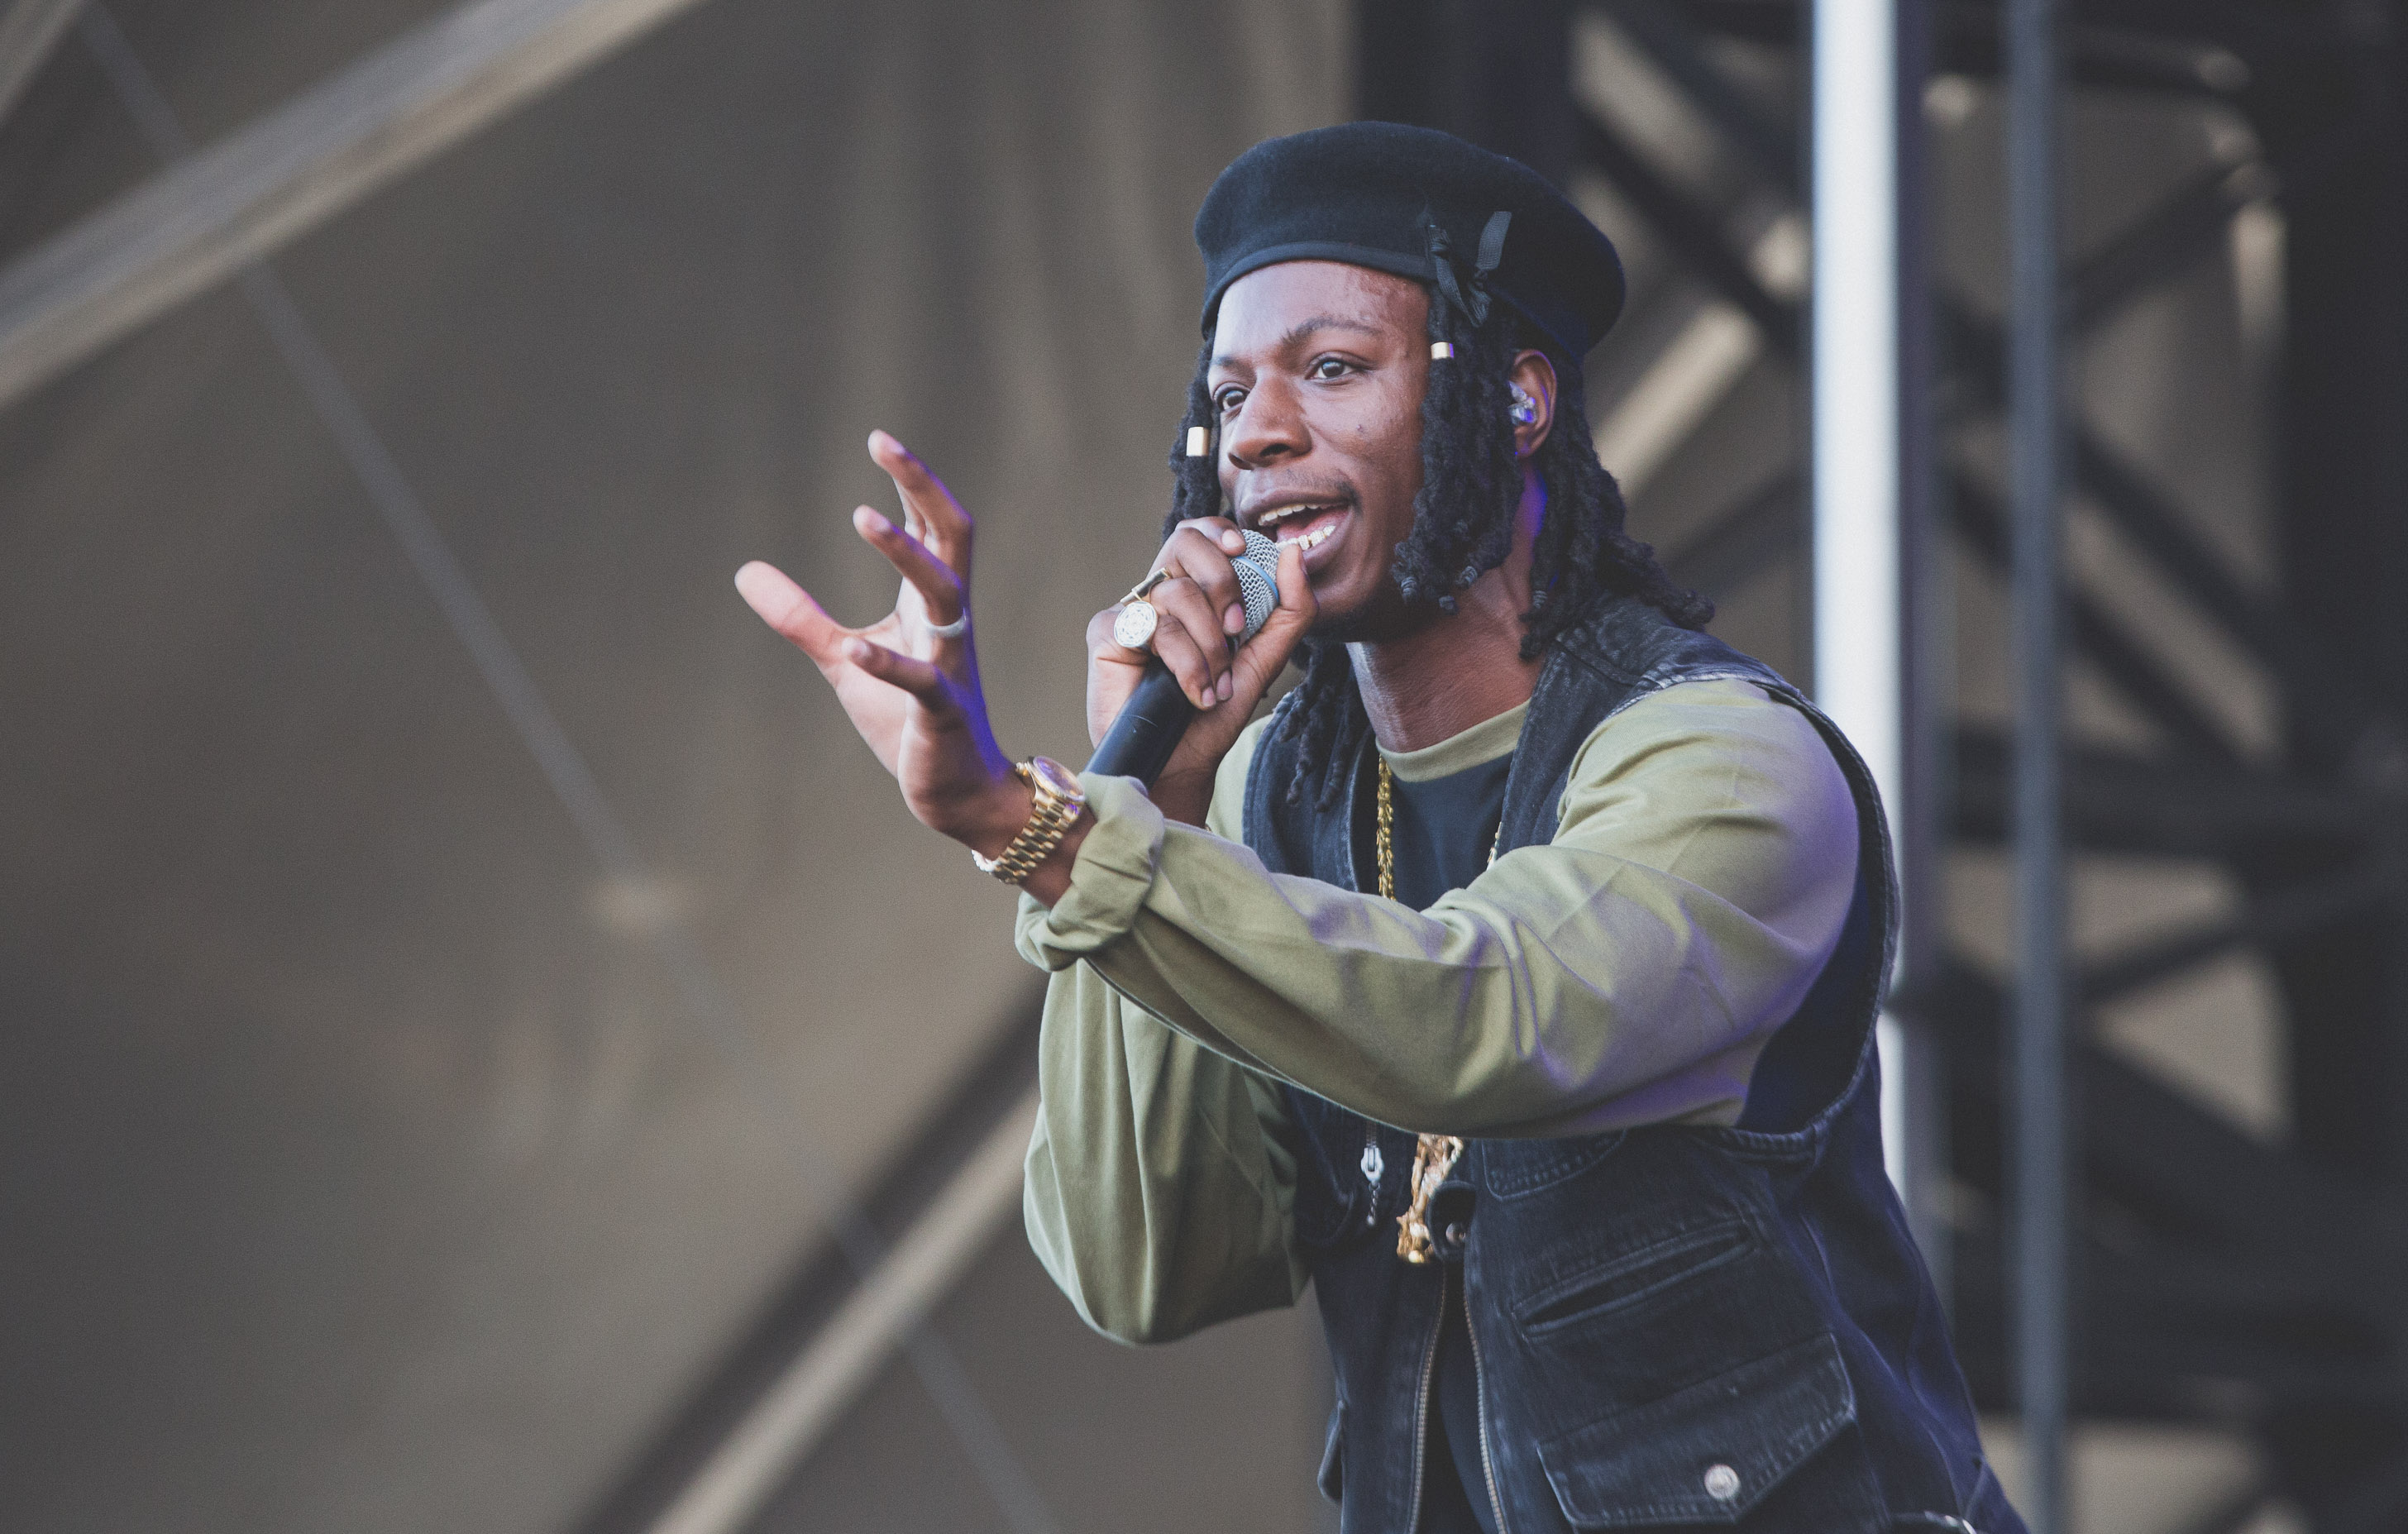 Joey Bada$$ Is Working With Non-Profit To Help Homeless NYC Students